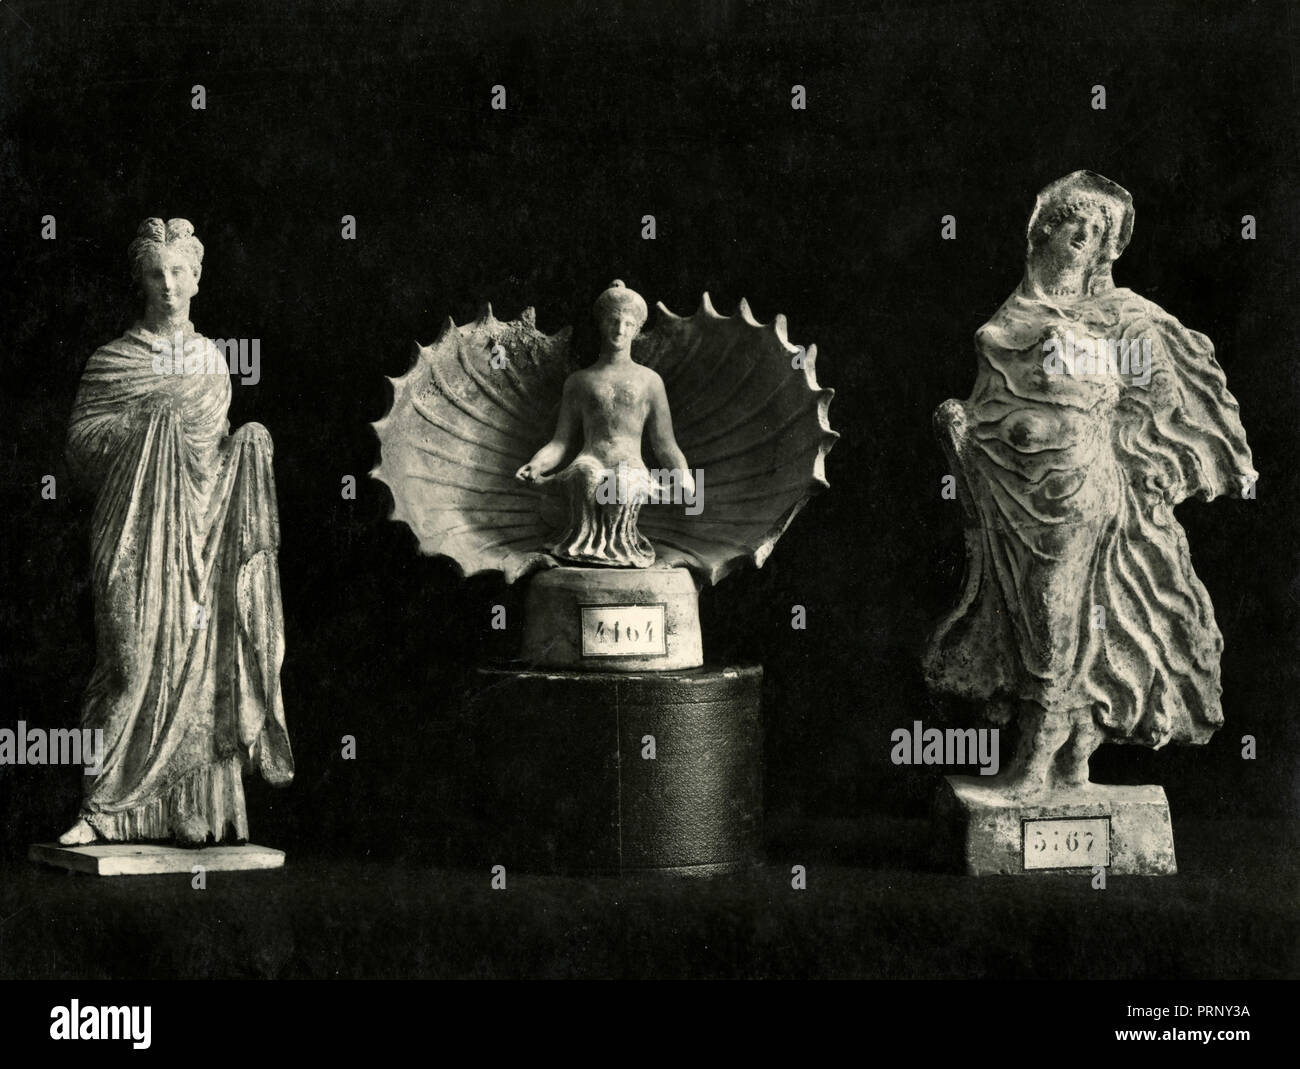 Tanagra figurines, Greece 1930s - Stock Image